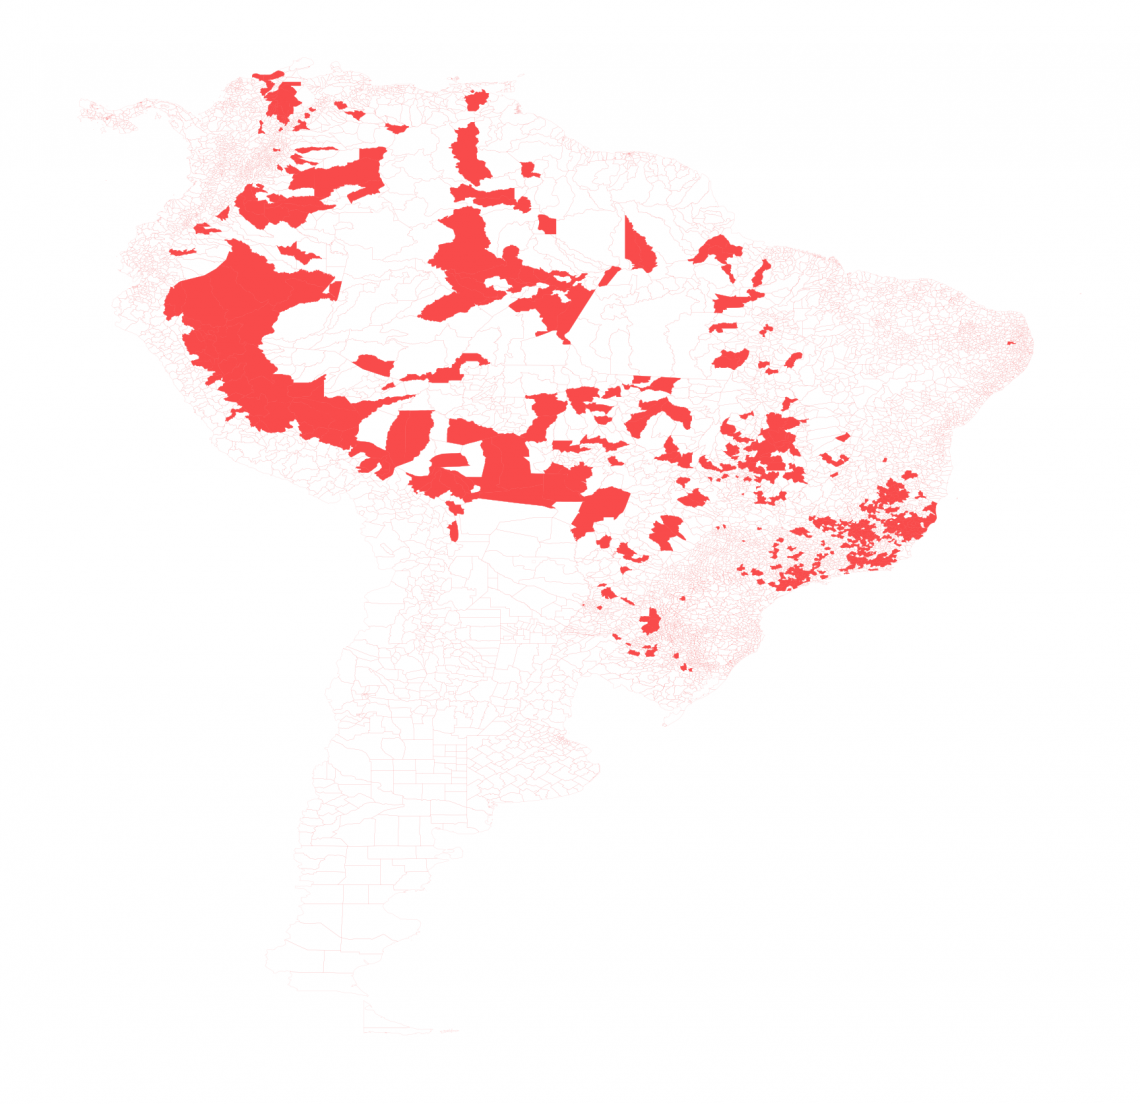 Reported cases of yellow fever in the Americas. Counties in red have recorded at least one case between 2000 and 2018.